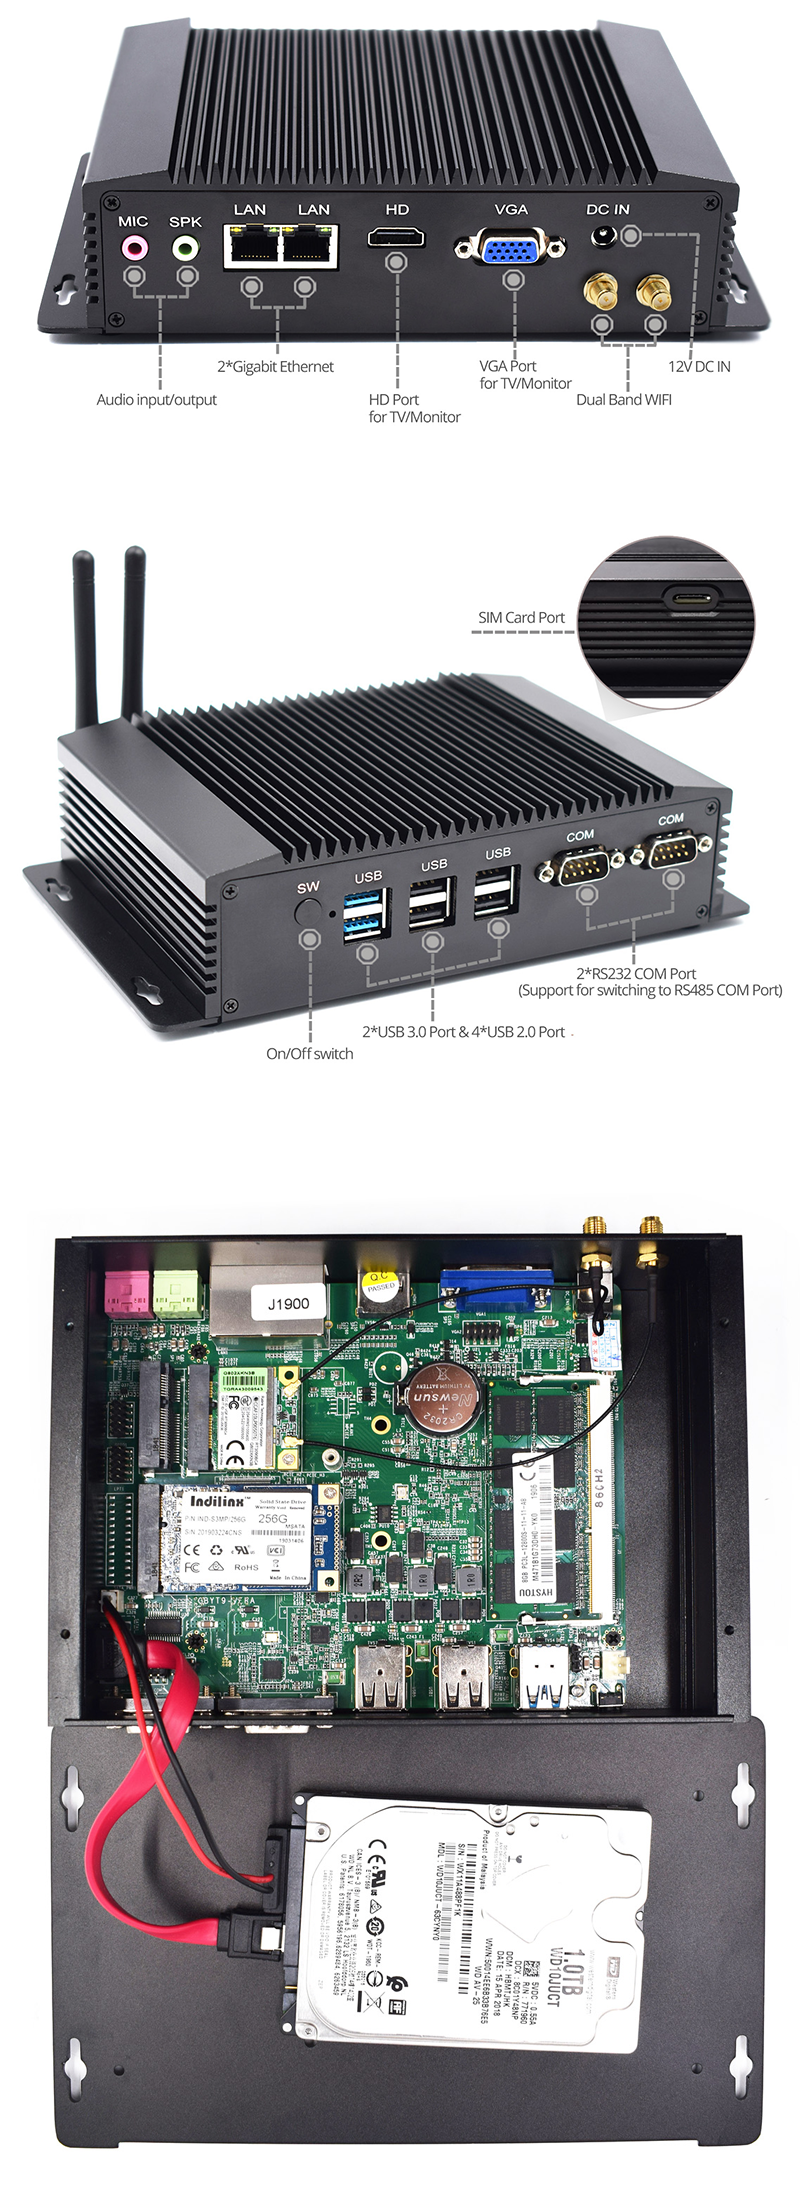 Dual Intel NIC J1900 Fanless Industrial Mini PC 2 LAN Linux Server pfsense Firewall PC Gamer 4G SIM Personal Computer Hardware